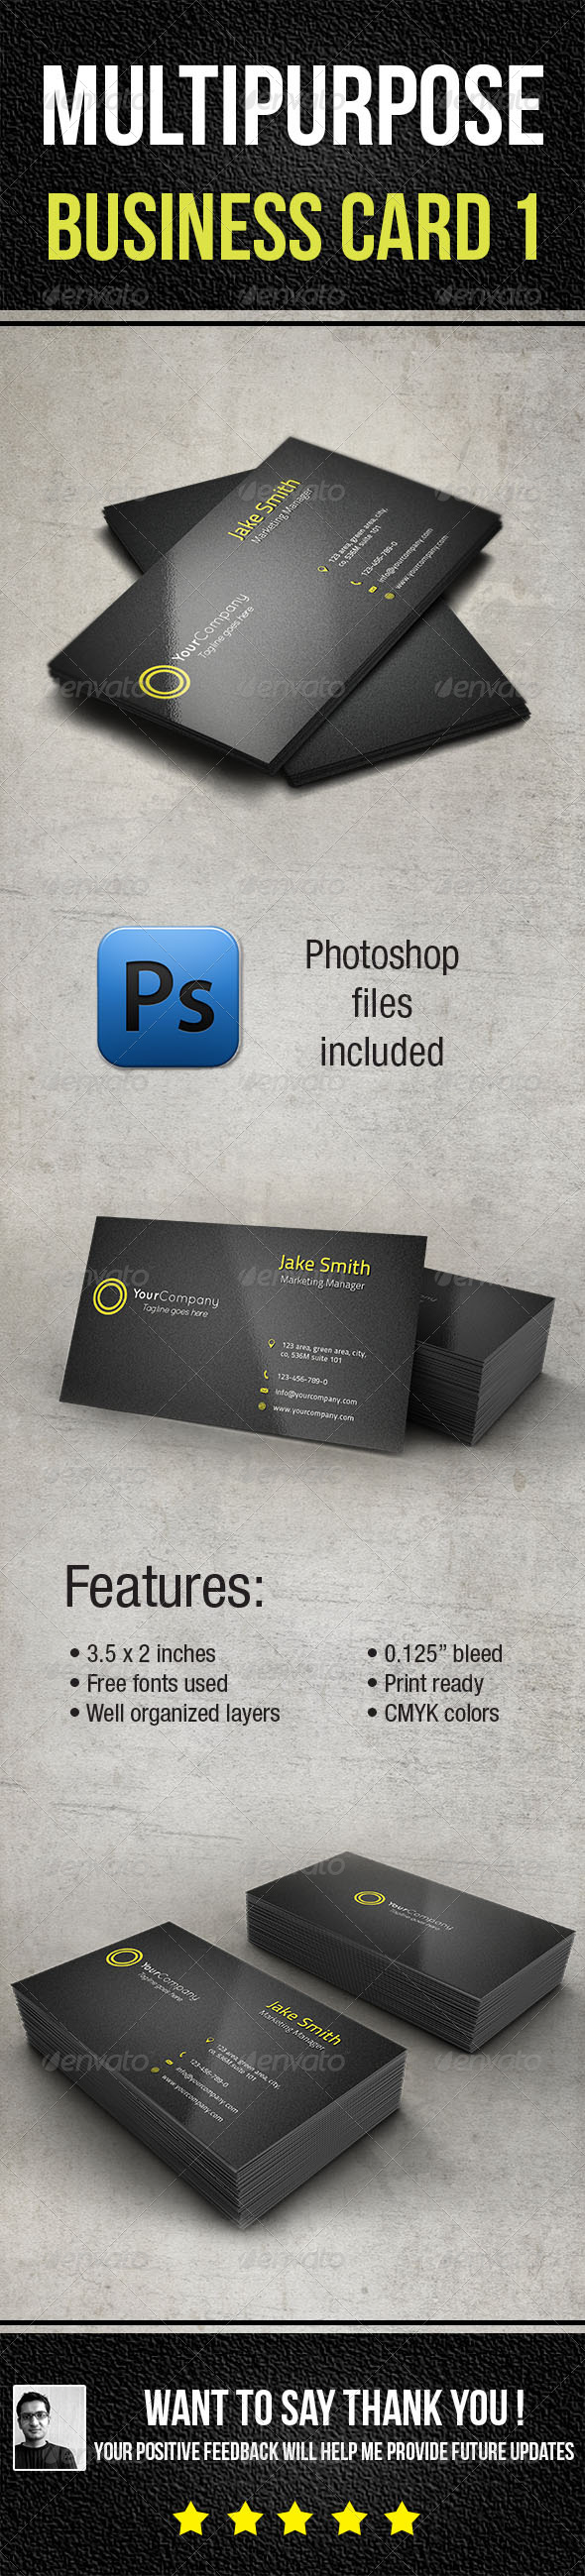 Multi-Purpose Business Card 1 - Corporate Business Cards